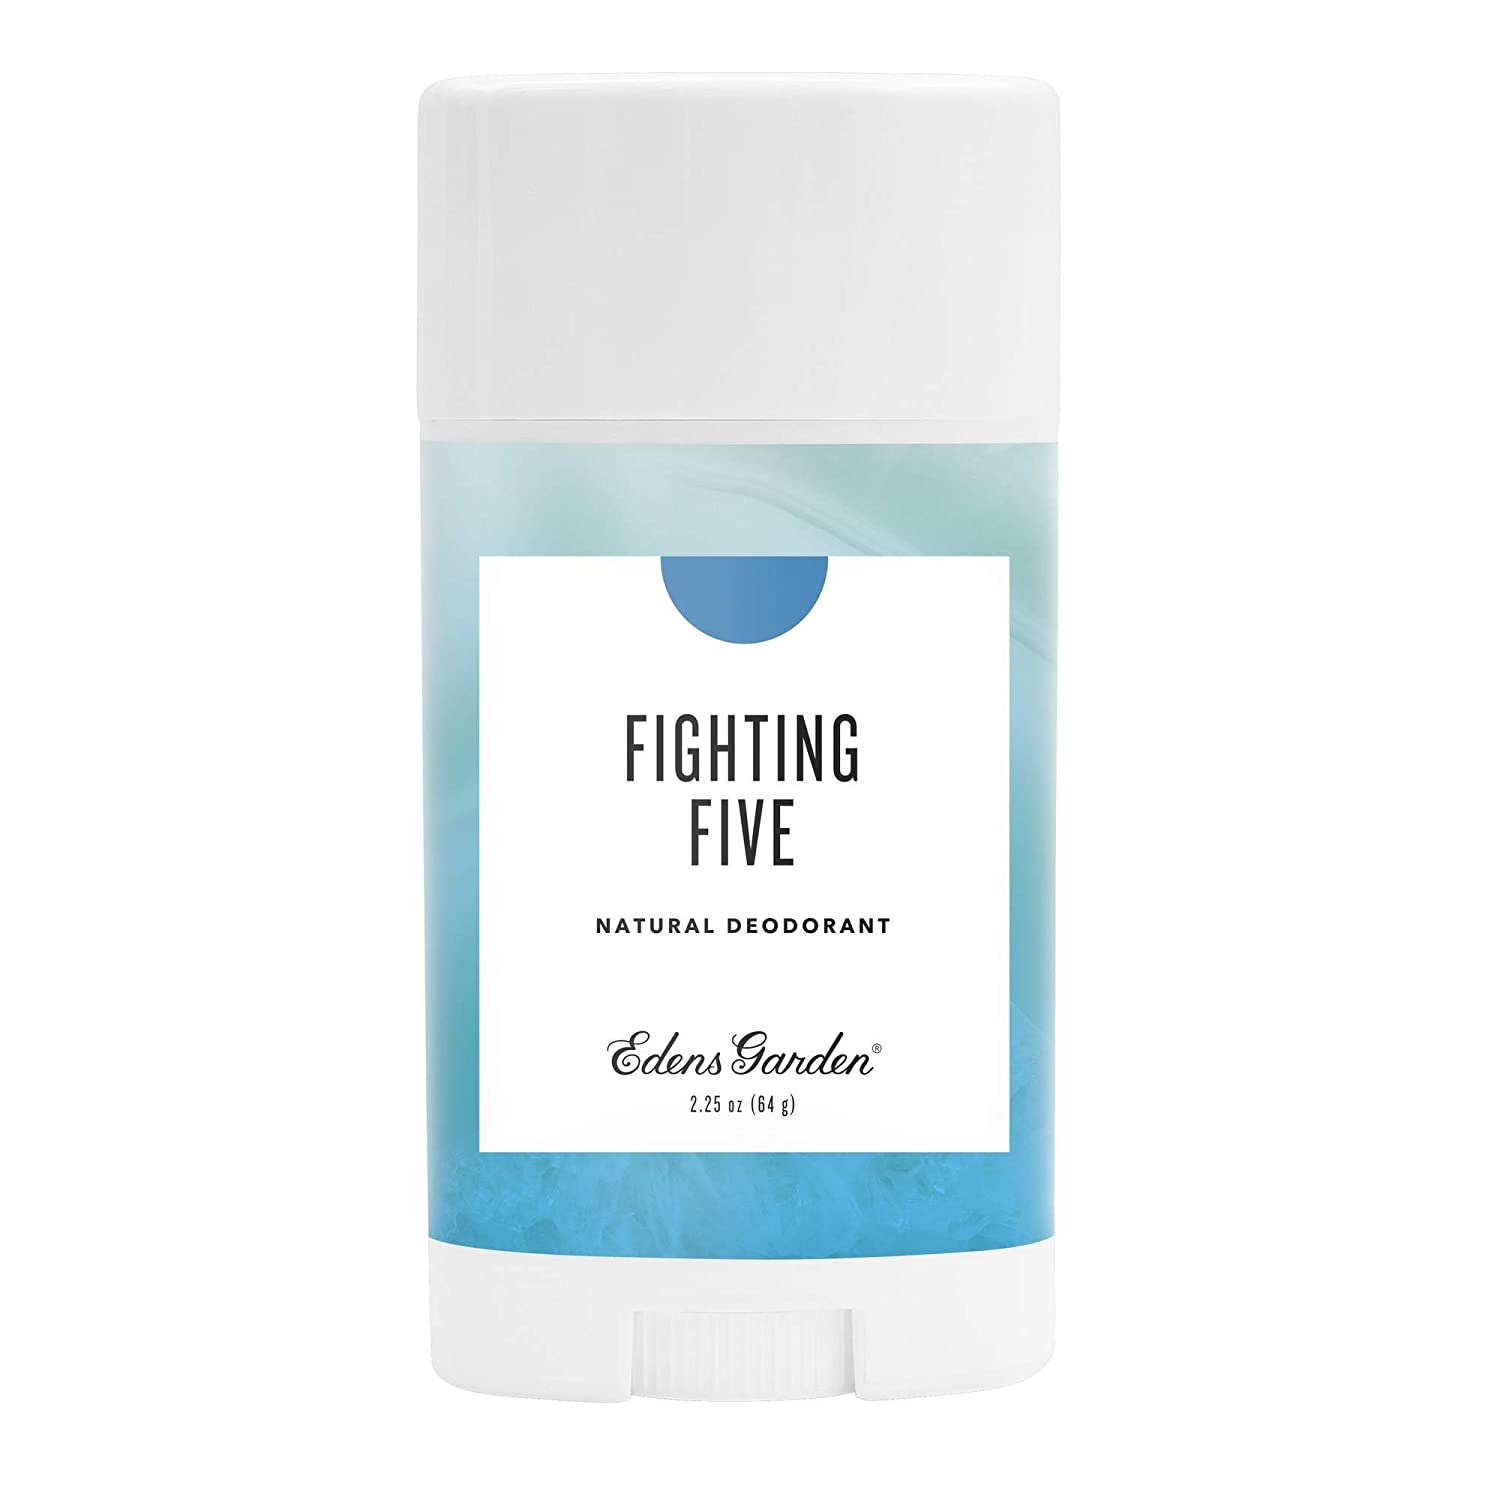 Edens Garden Fighting Five Natural Deodorant, Aluminum & Baking Soda Free (For Normal & Sensitive Skin), Made With Essential Oils, Vegan, For Men & Women, 2.25 oz